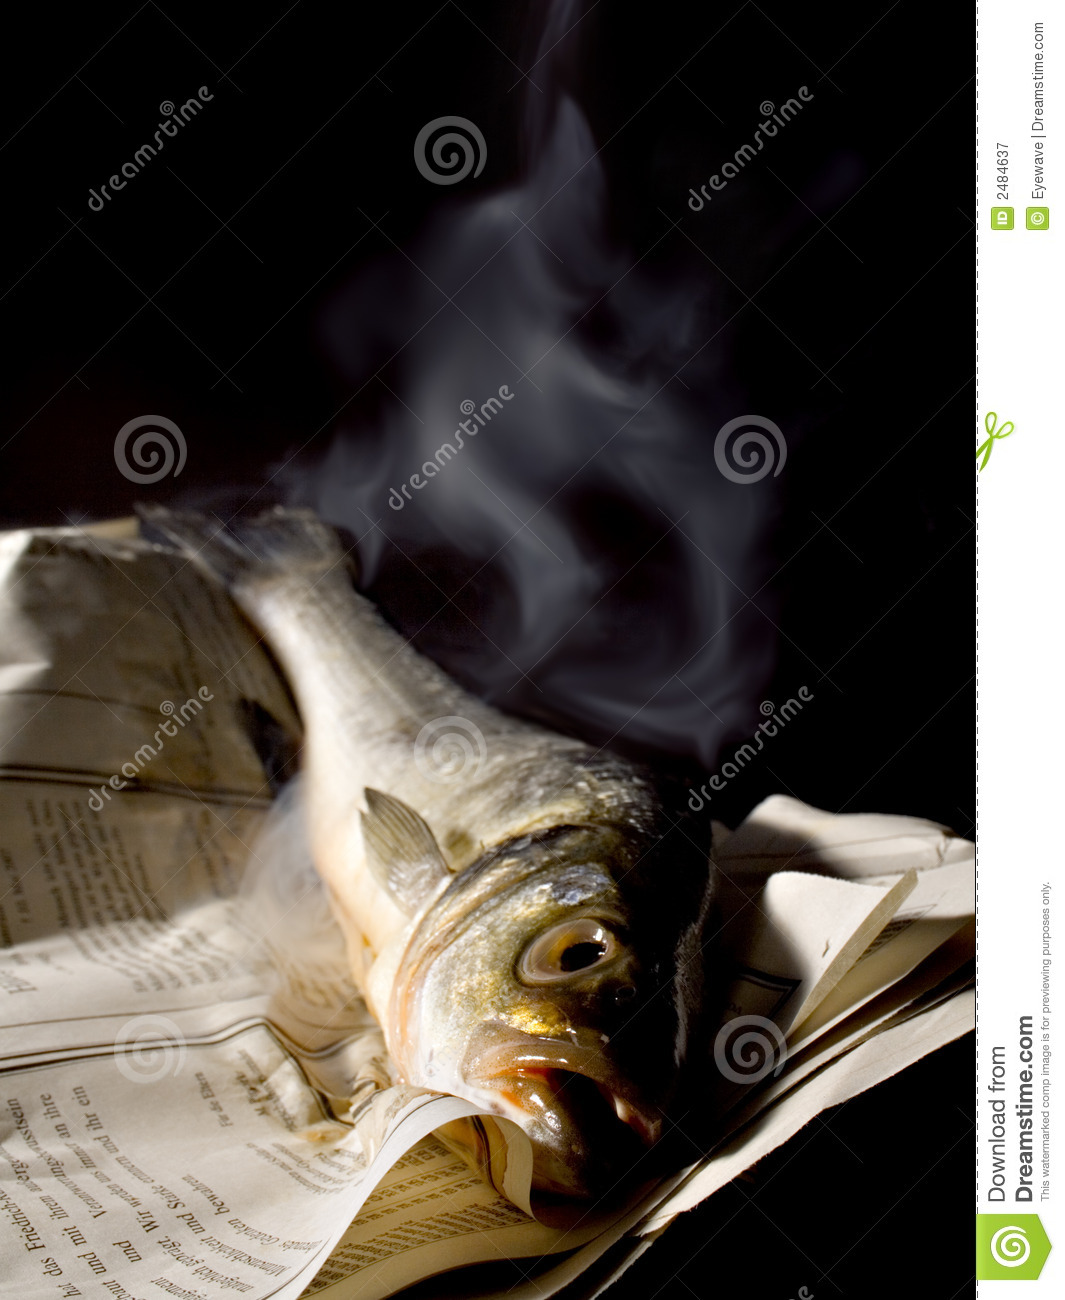 Smelly fish royalty free stock photography image 2484637 for Stinky fish in a can